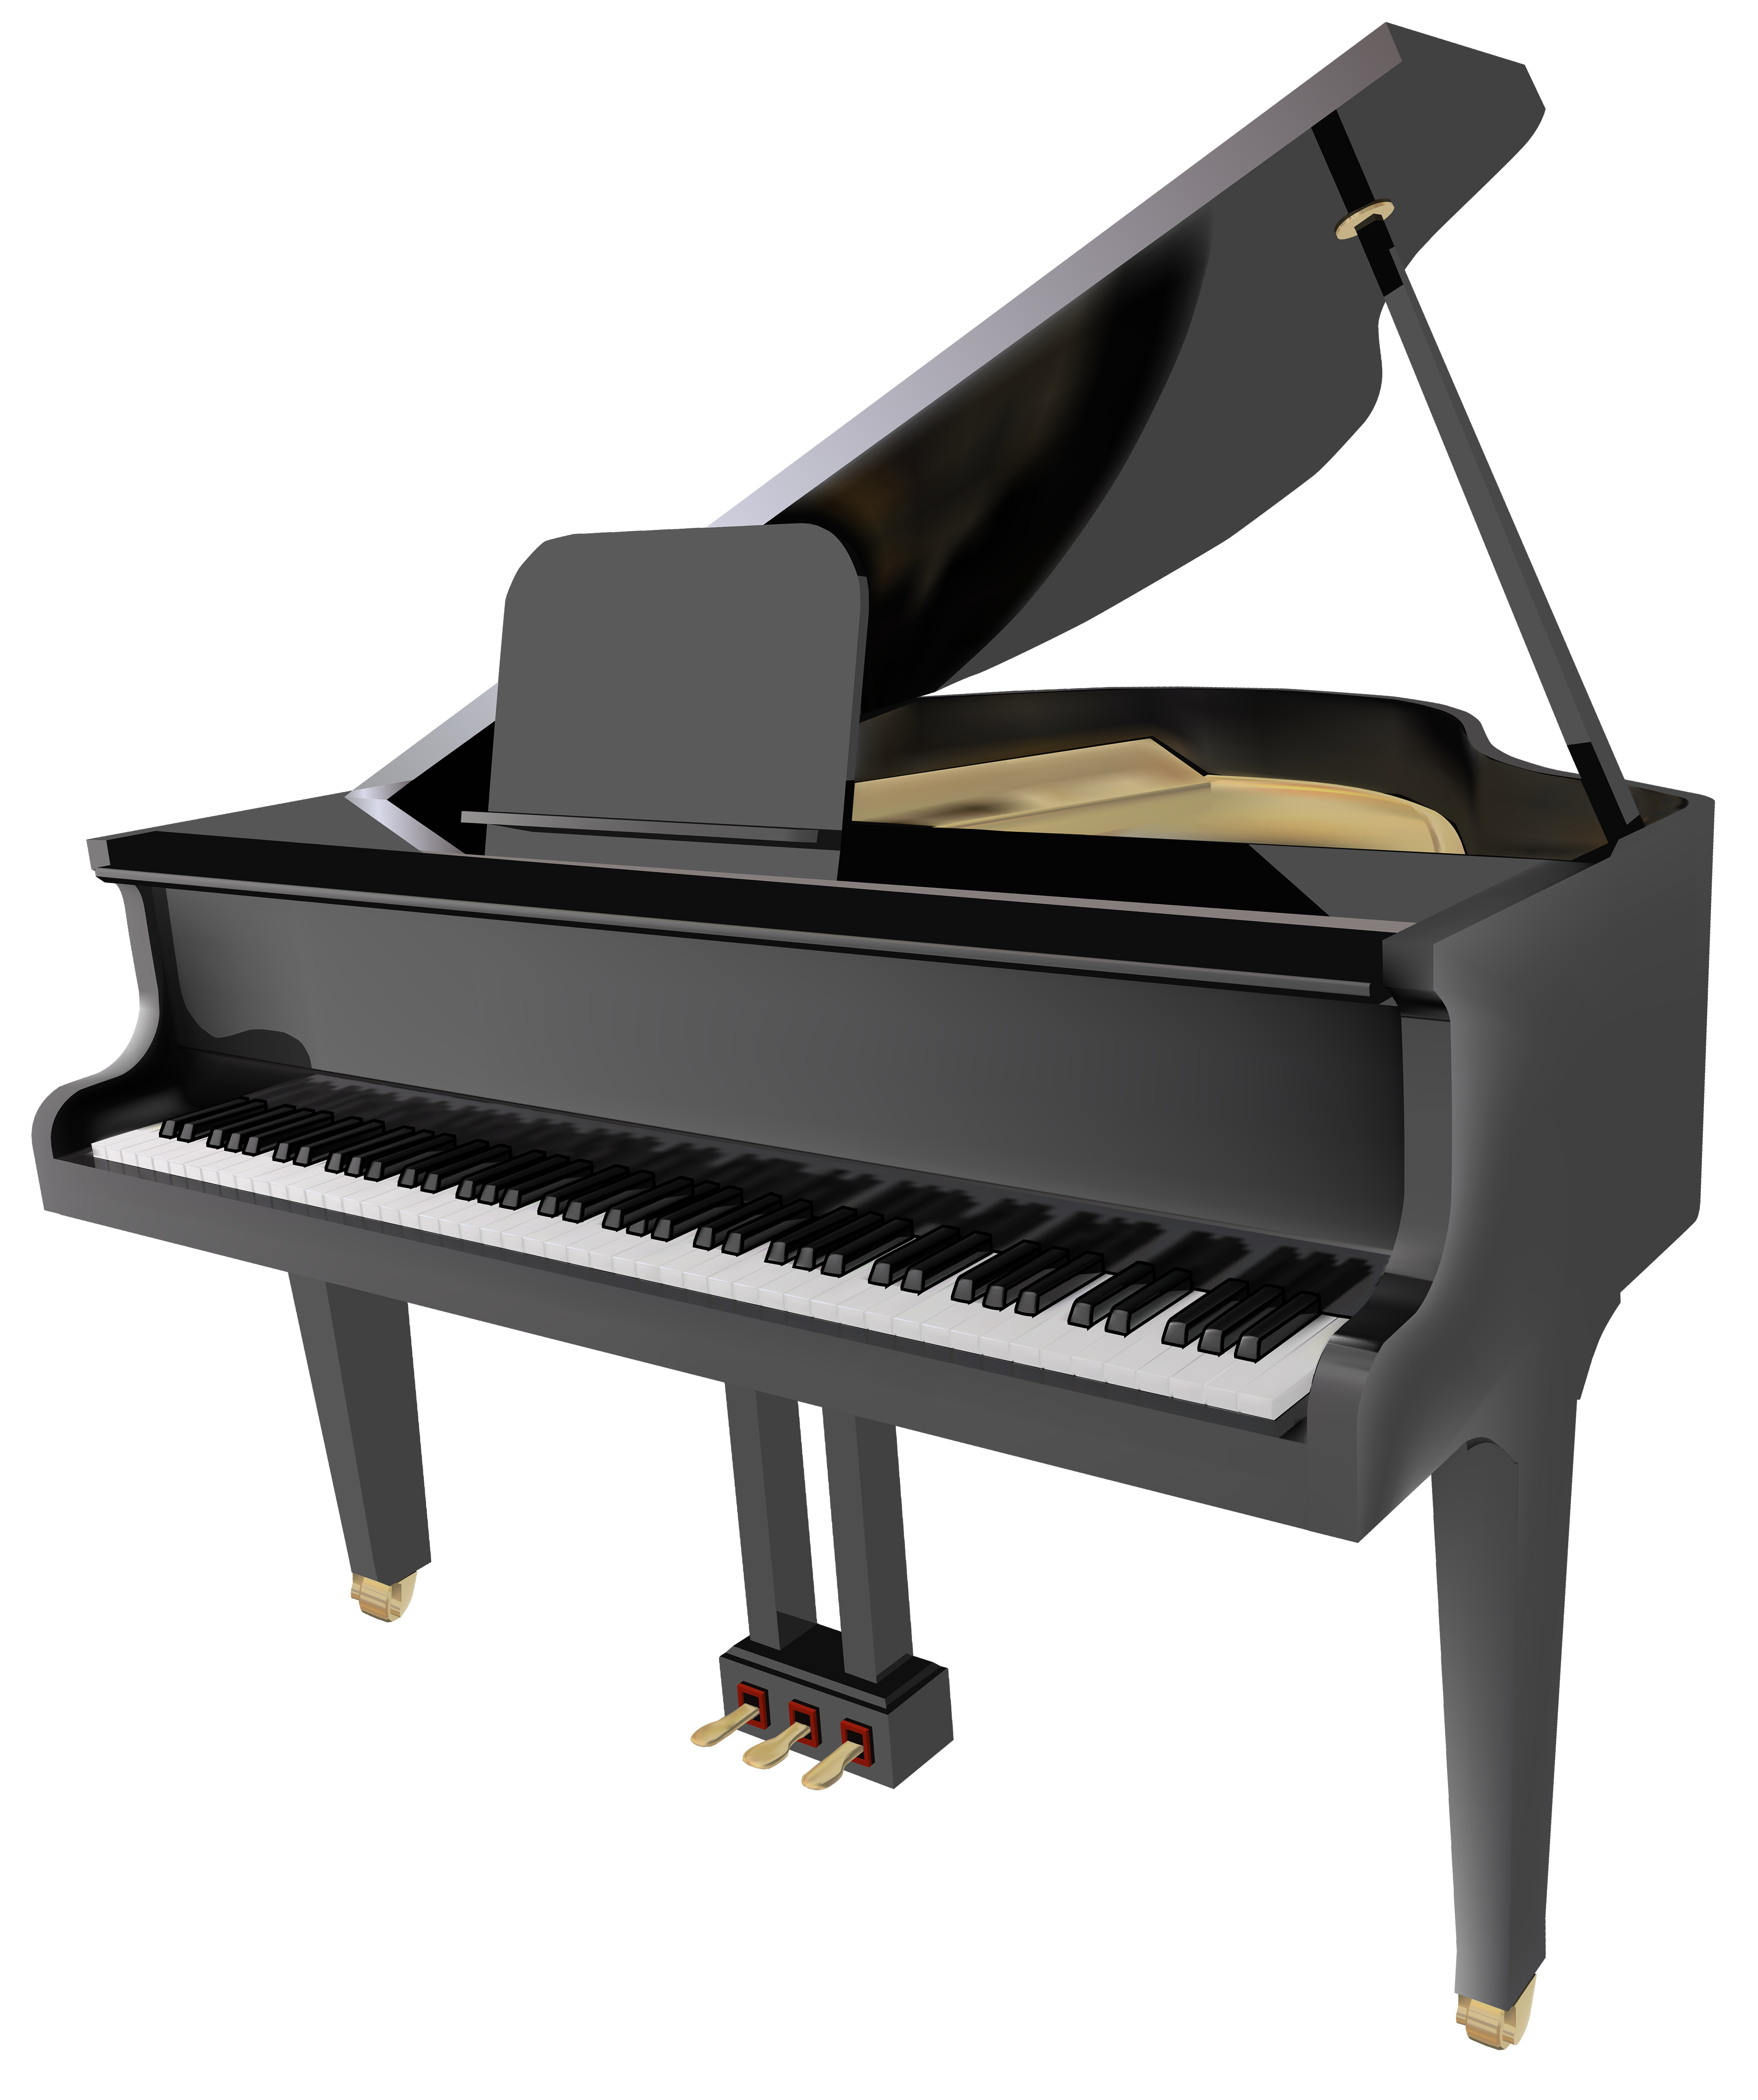 Piano clip art free clipart images 3 clipartcow 2.